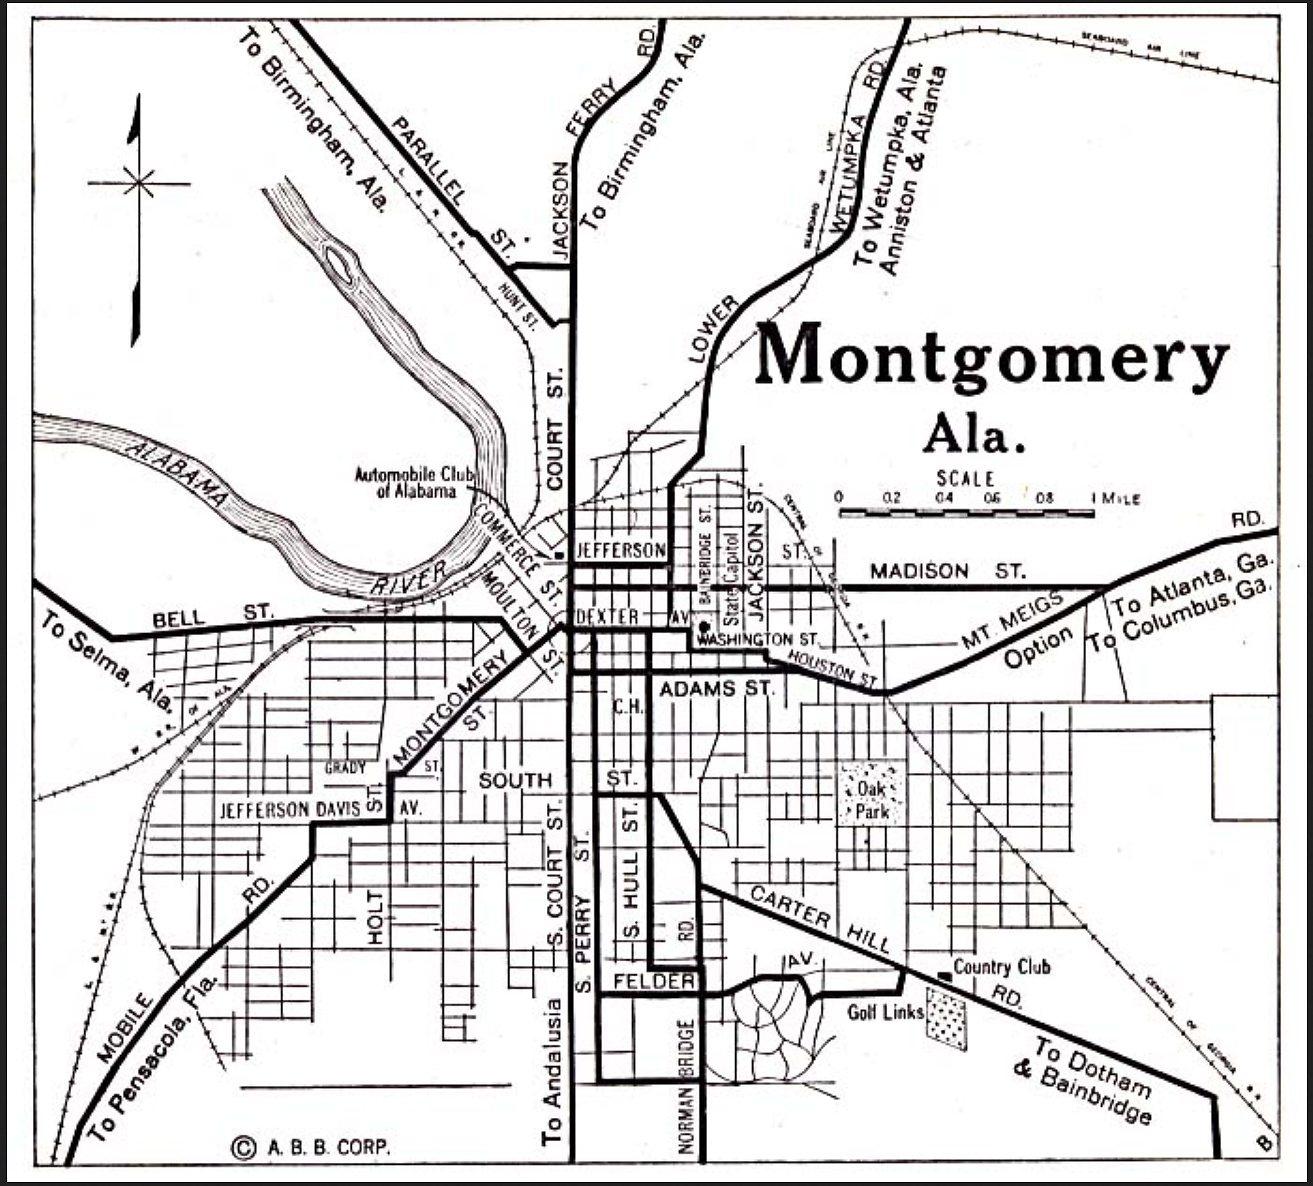 Montgomery, Alabama - Monday Map - One Man's World on richmond va map, st louis mo map, nashville tn map, marion co alabama on map, providence ri map, trenton nj map, san antonio tx map, newport ri map, phoenix az map, erie pa map, omaha ne map, oklahoma city ok map, milwaukee wi map, augusta ga map, montgomery state map, montgomery tx map, montgomery alabama, roanoke va map, san diego ca map, rochester ny map,